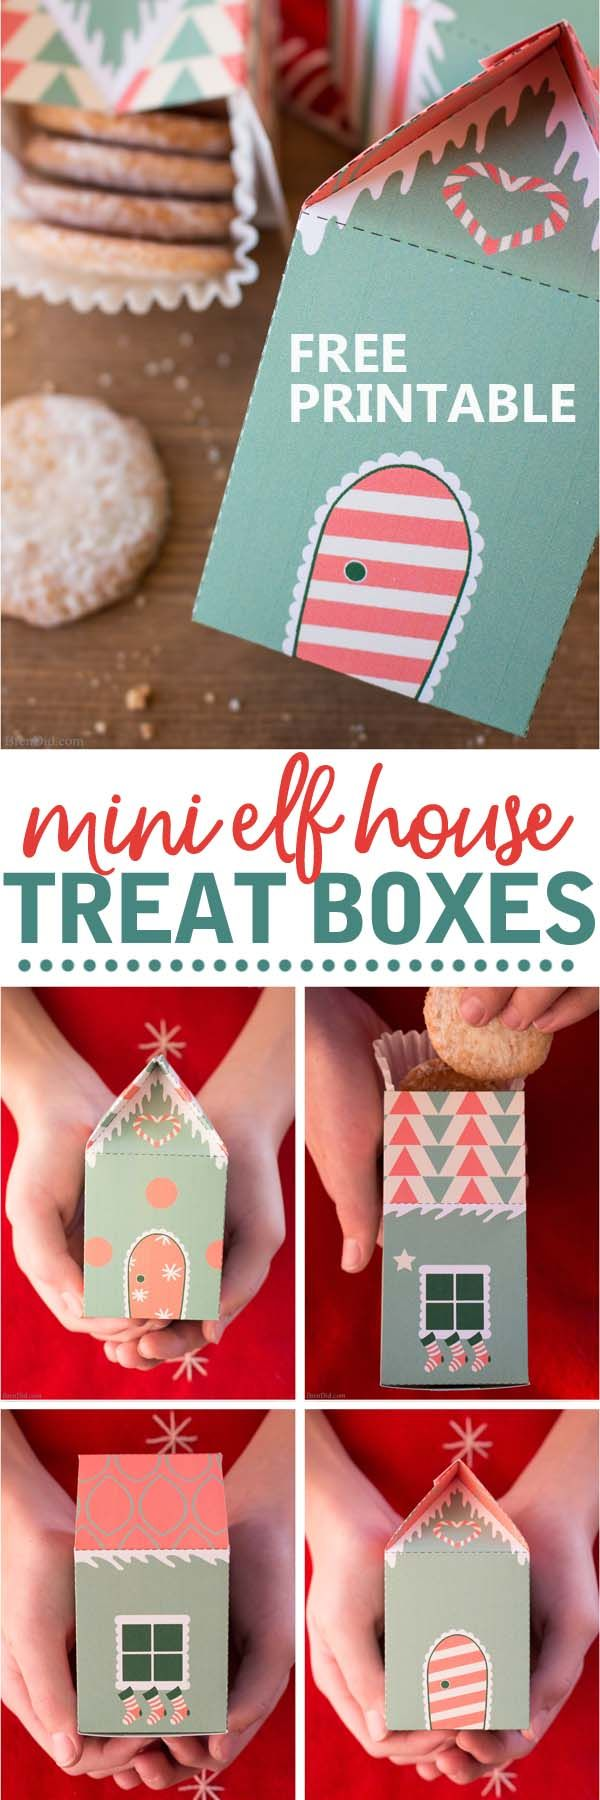 Free printable elf house treat boxes for Christmas. These fun treat boxes make perfect Secret Santa presents, stocking stuffers, and  cookie holders. #christmas #treatbox #elf